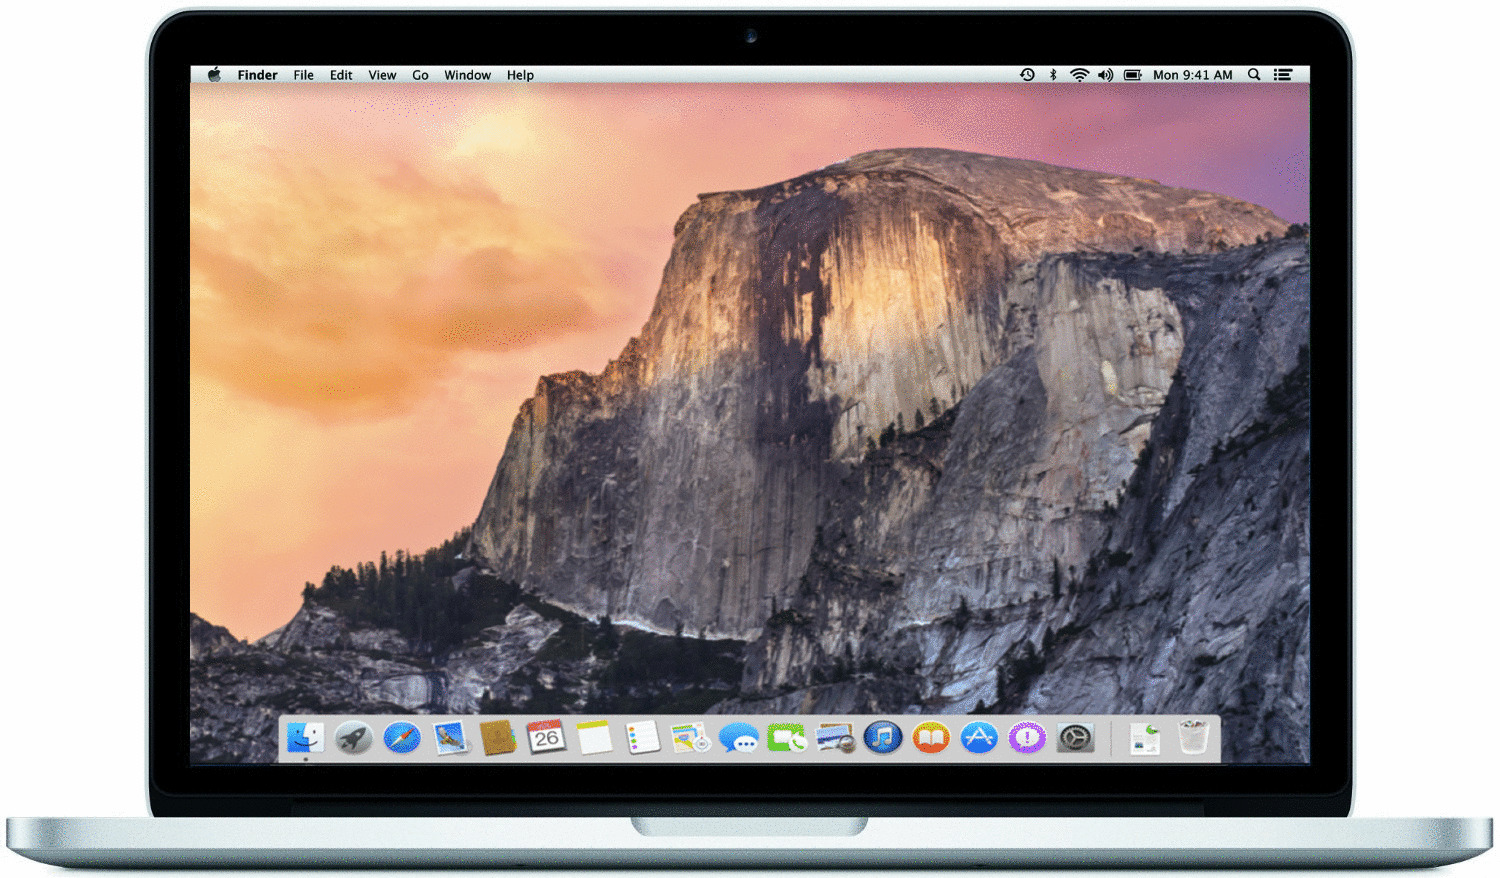 Apple MacBook Pro CTO 13.3 (Retina Display) 2.9 GHz Intel Core i7 16 GB RAM 512 GB PCIe SSD [Early 2015]